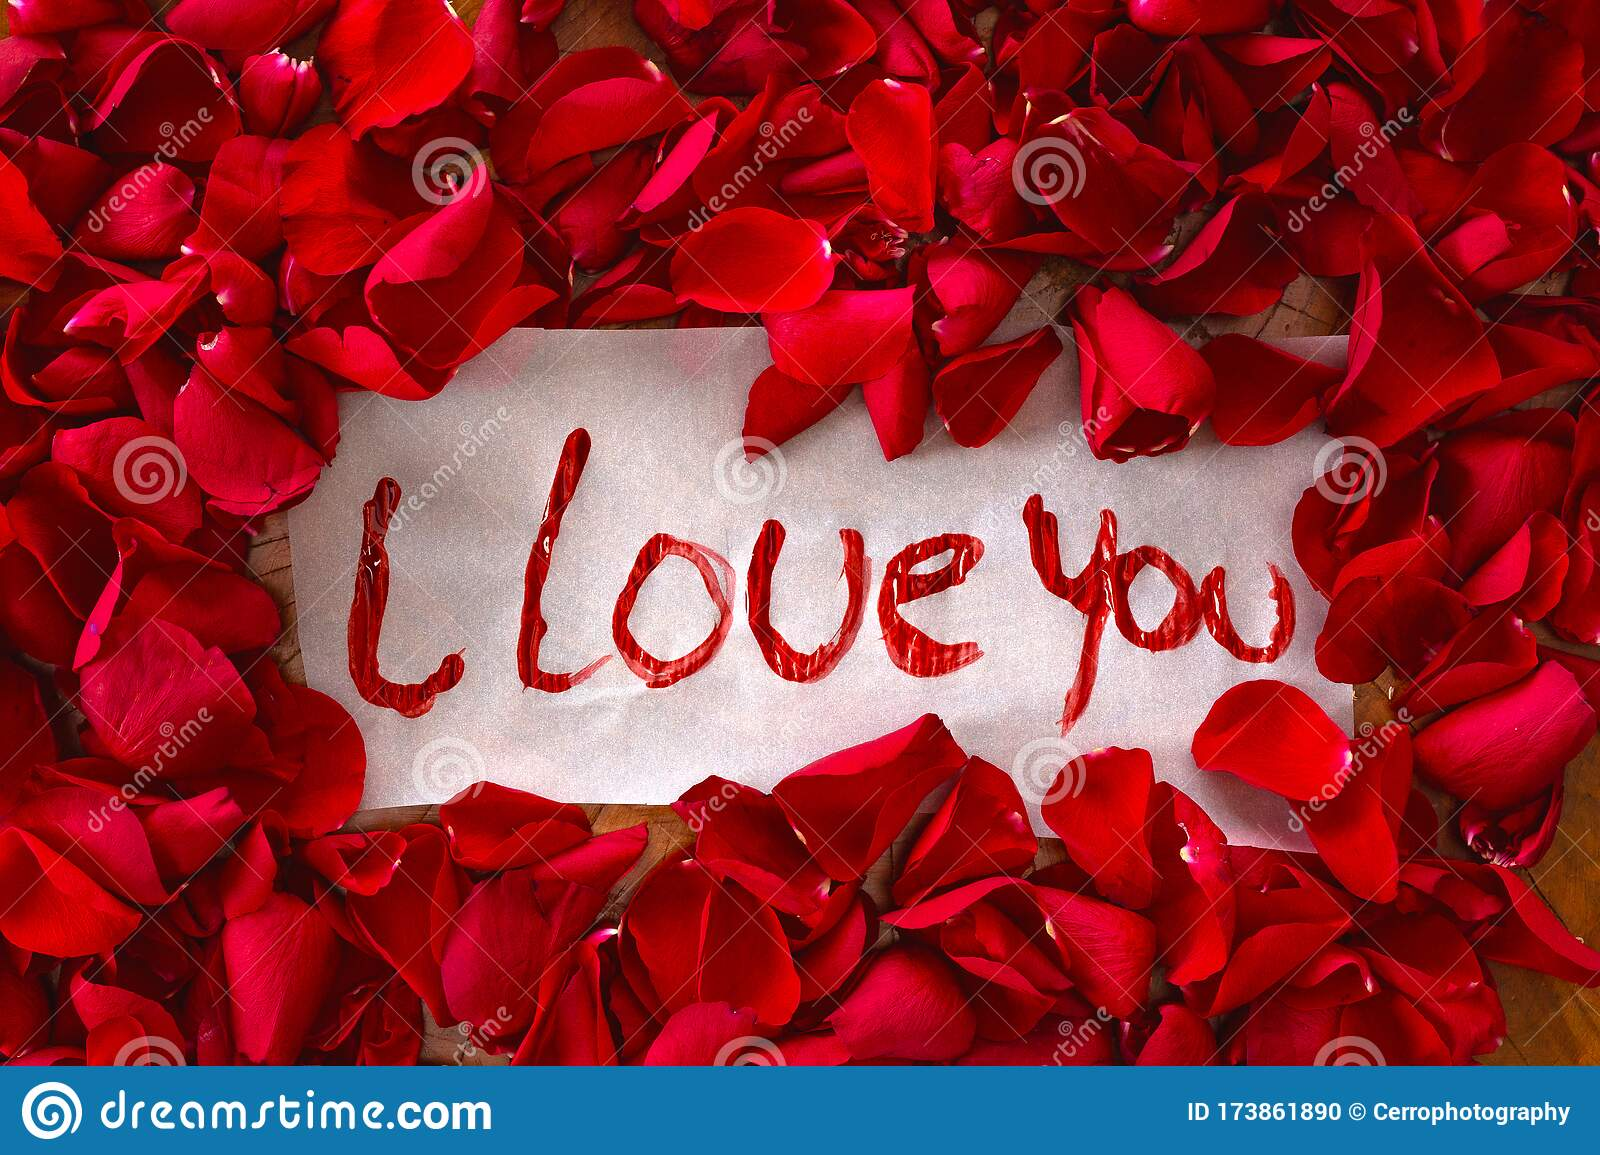 1 537 i love you rose photos free royalty free stock photos from dreamstime https www dreamstime com text i love you surrounded red rose petals romantic concept top view valentines background beauty image173861890